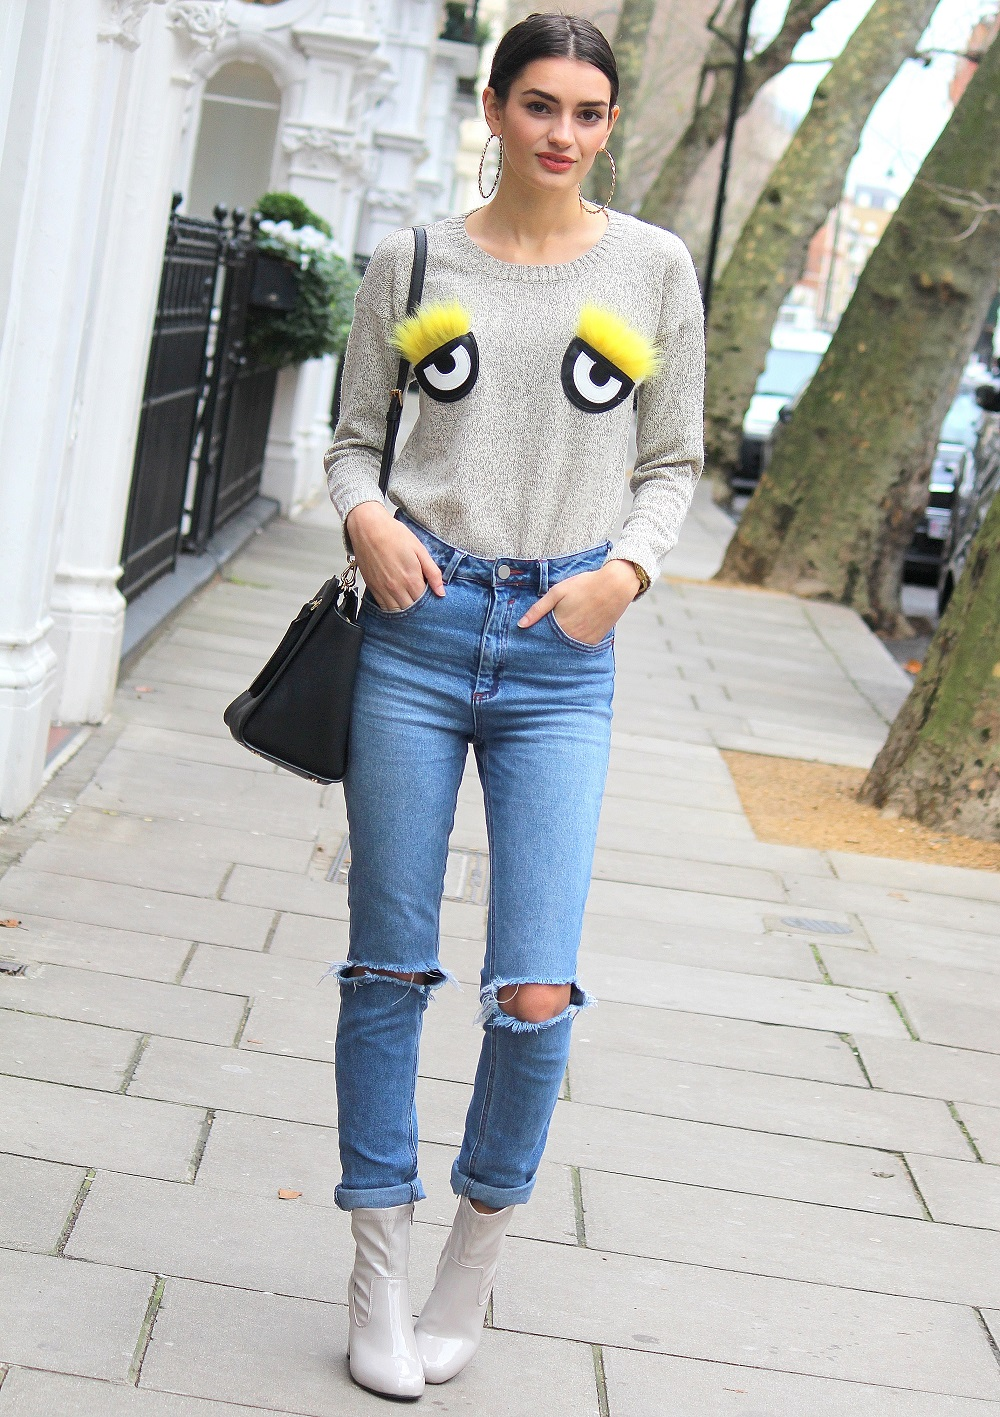 peexo fashion blogger wearing ripped jeans and 3d jumper